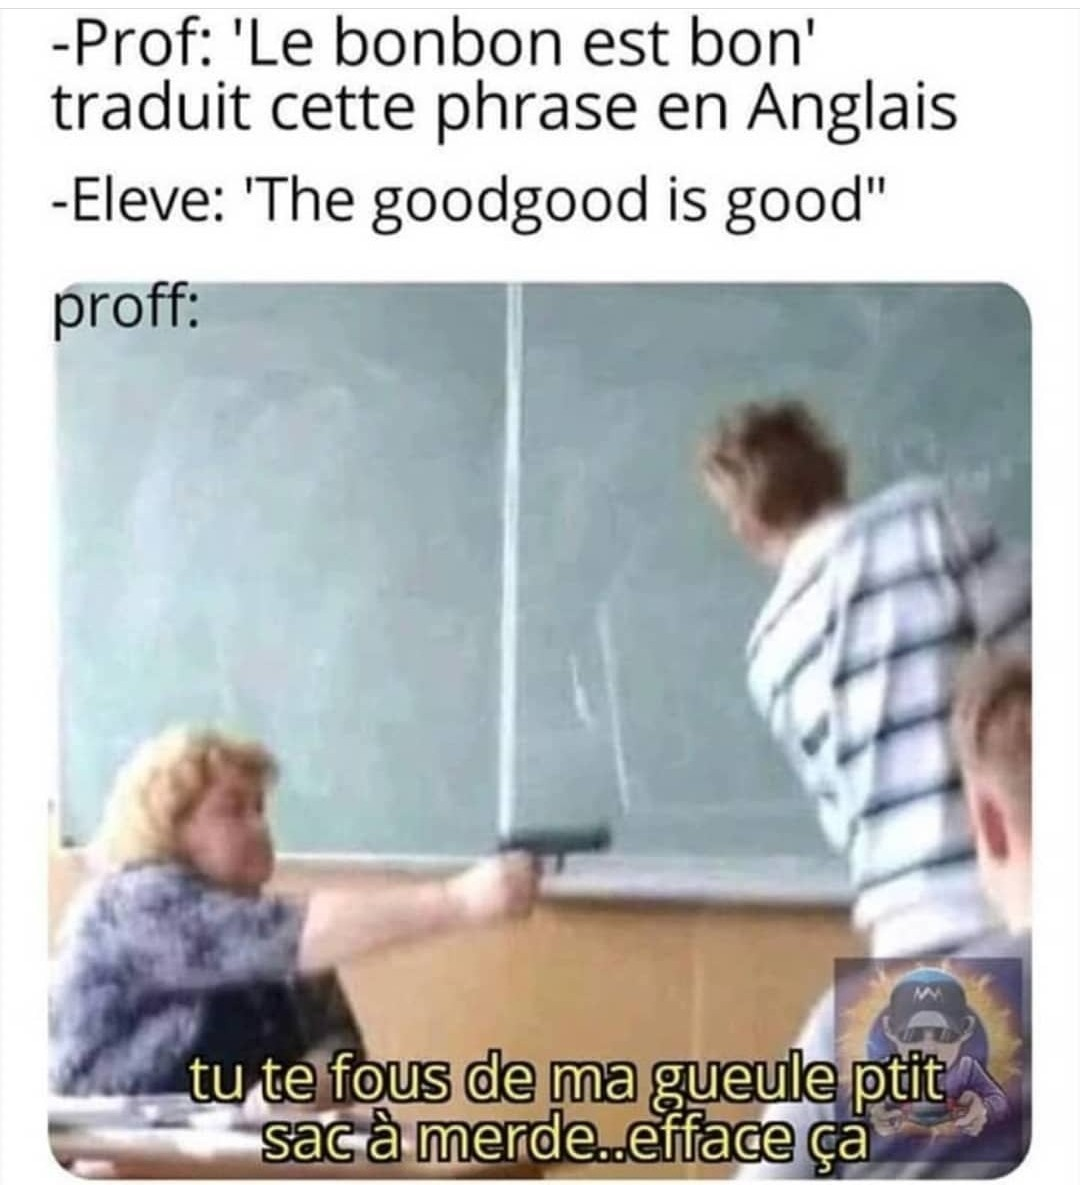 The goodgood is so good - meme